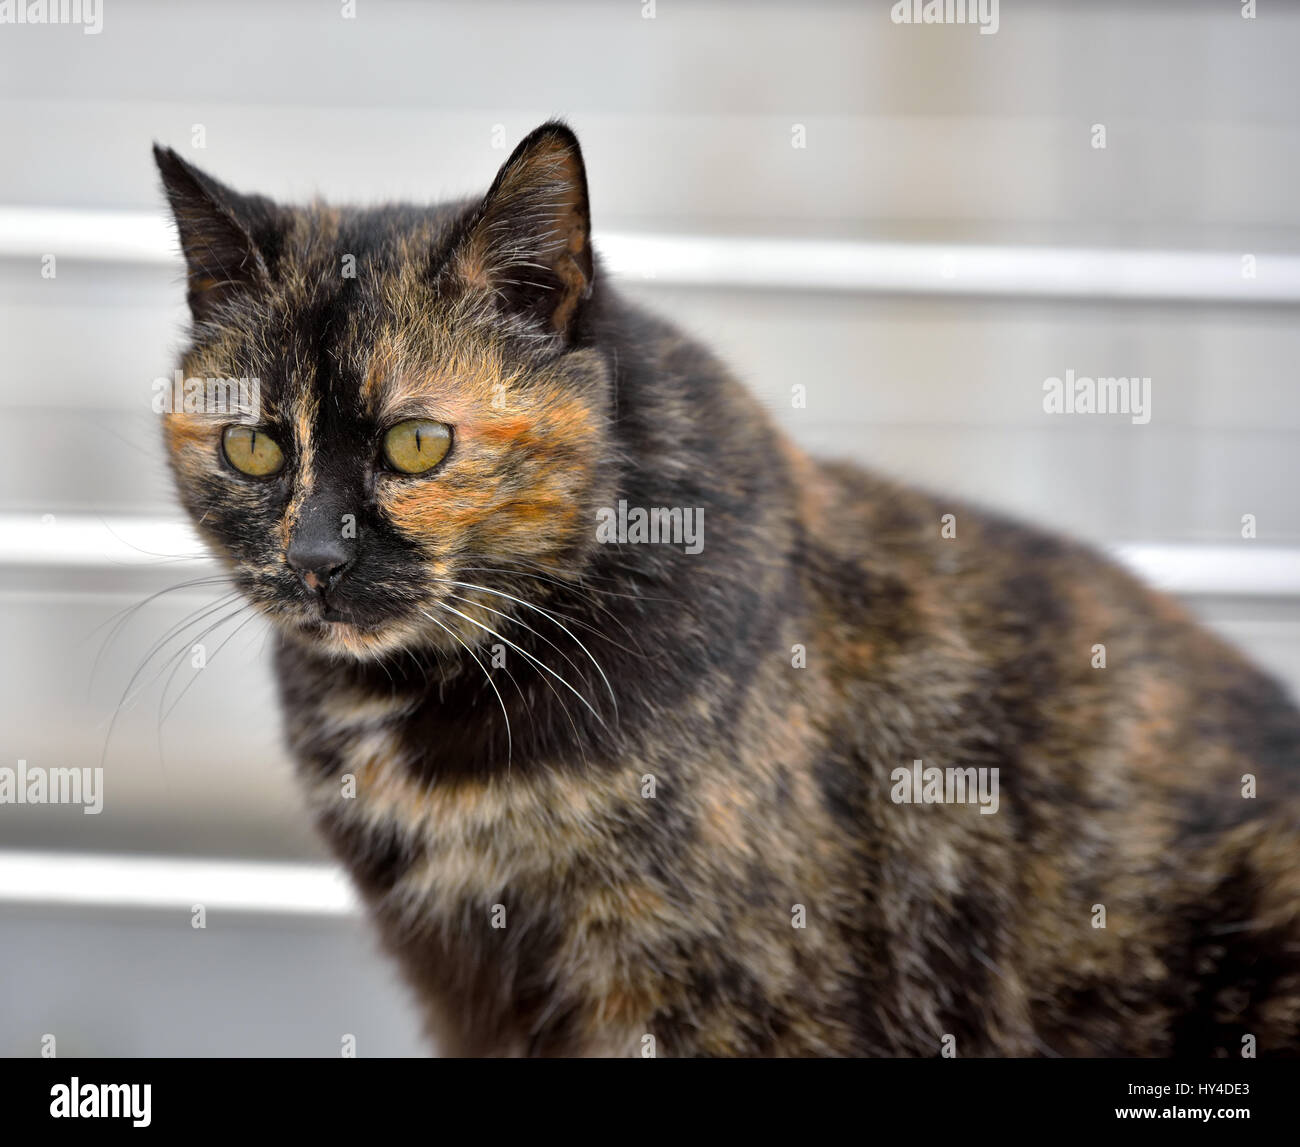 chubby cat - Stock Image